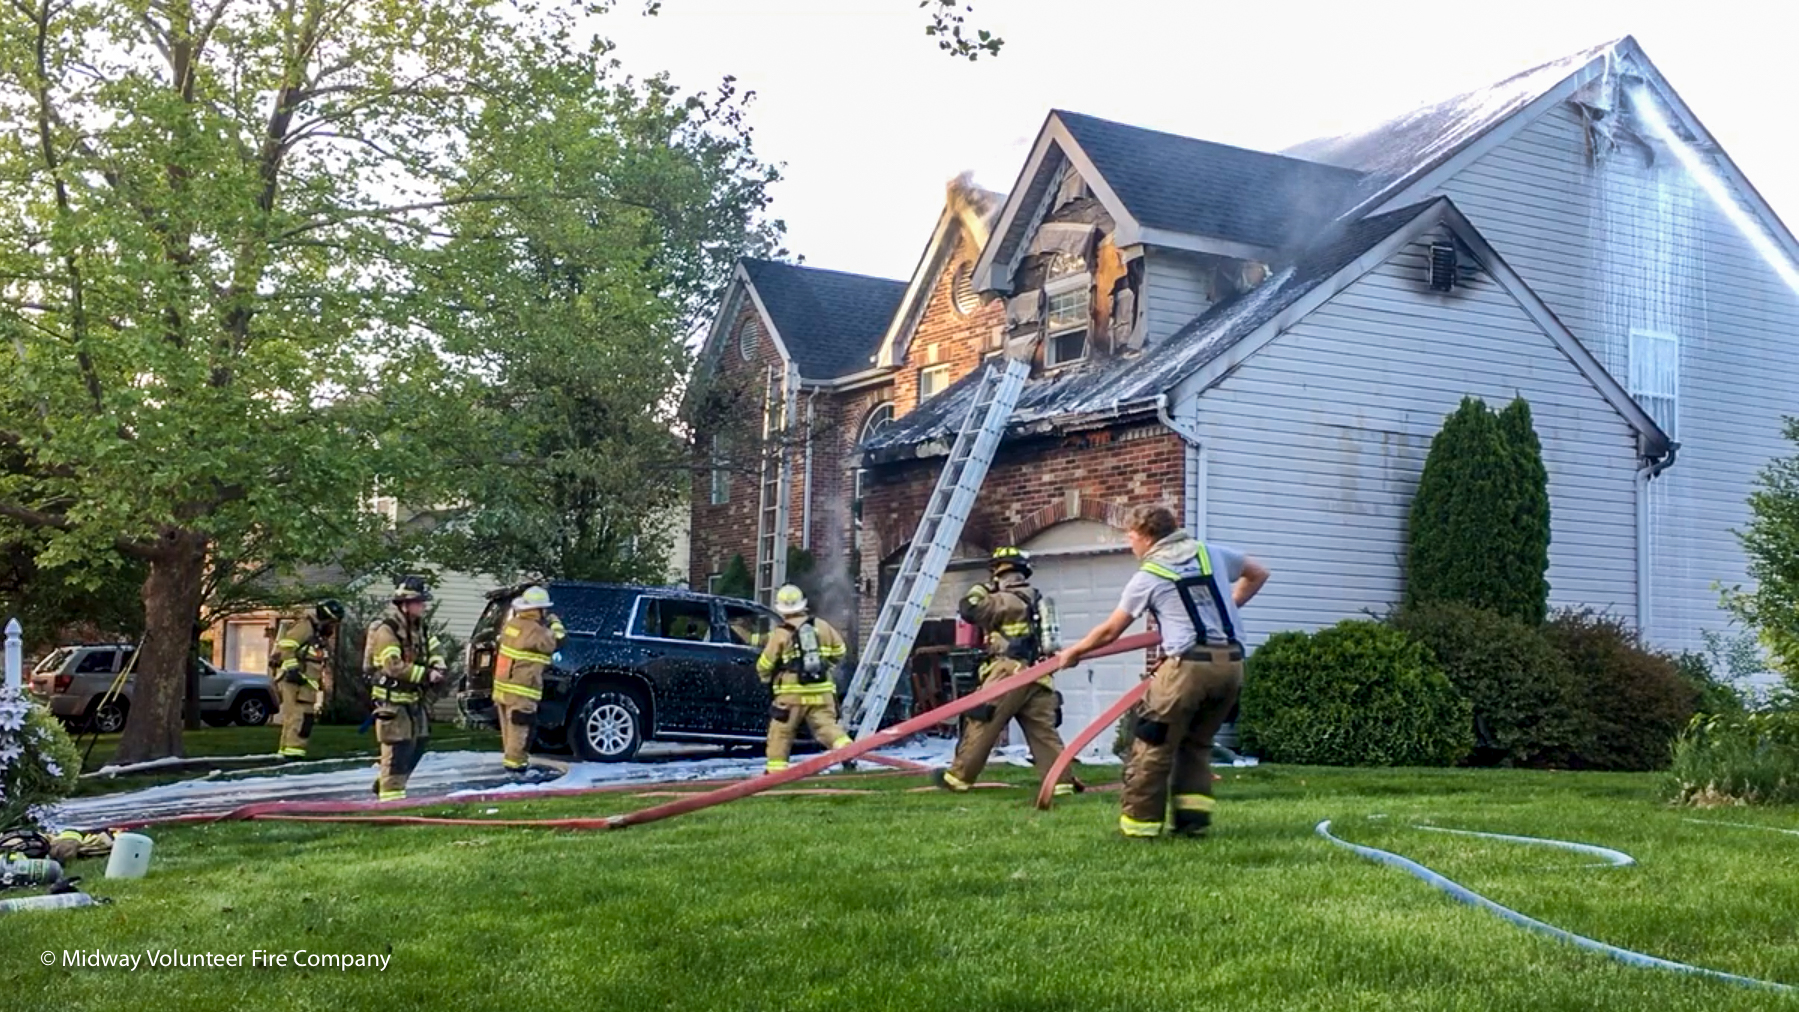 2019.05.16 - At 6:43 Midway Volunteer Fire Company responded to the report of an auto and dwelling fire on Daystar Drive in Buckingham Township. Assisting with the call were fire crews from Doylestown and Point Pleasant. There were no injuries reported by residents or first responders. Both the home and auto were damaged. The Buckingham Township Fire Marshal is investigating the source of the fire.